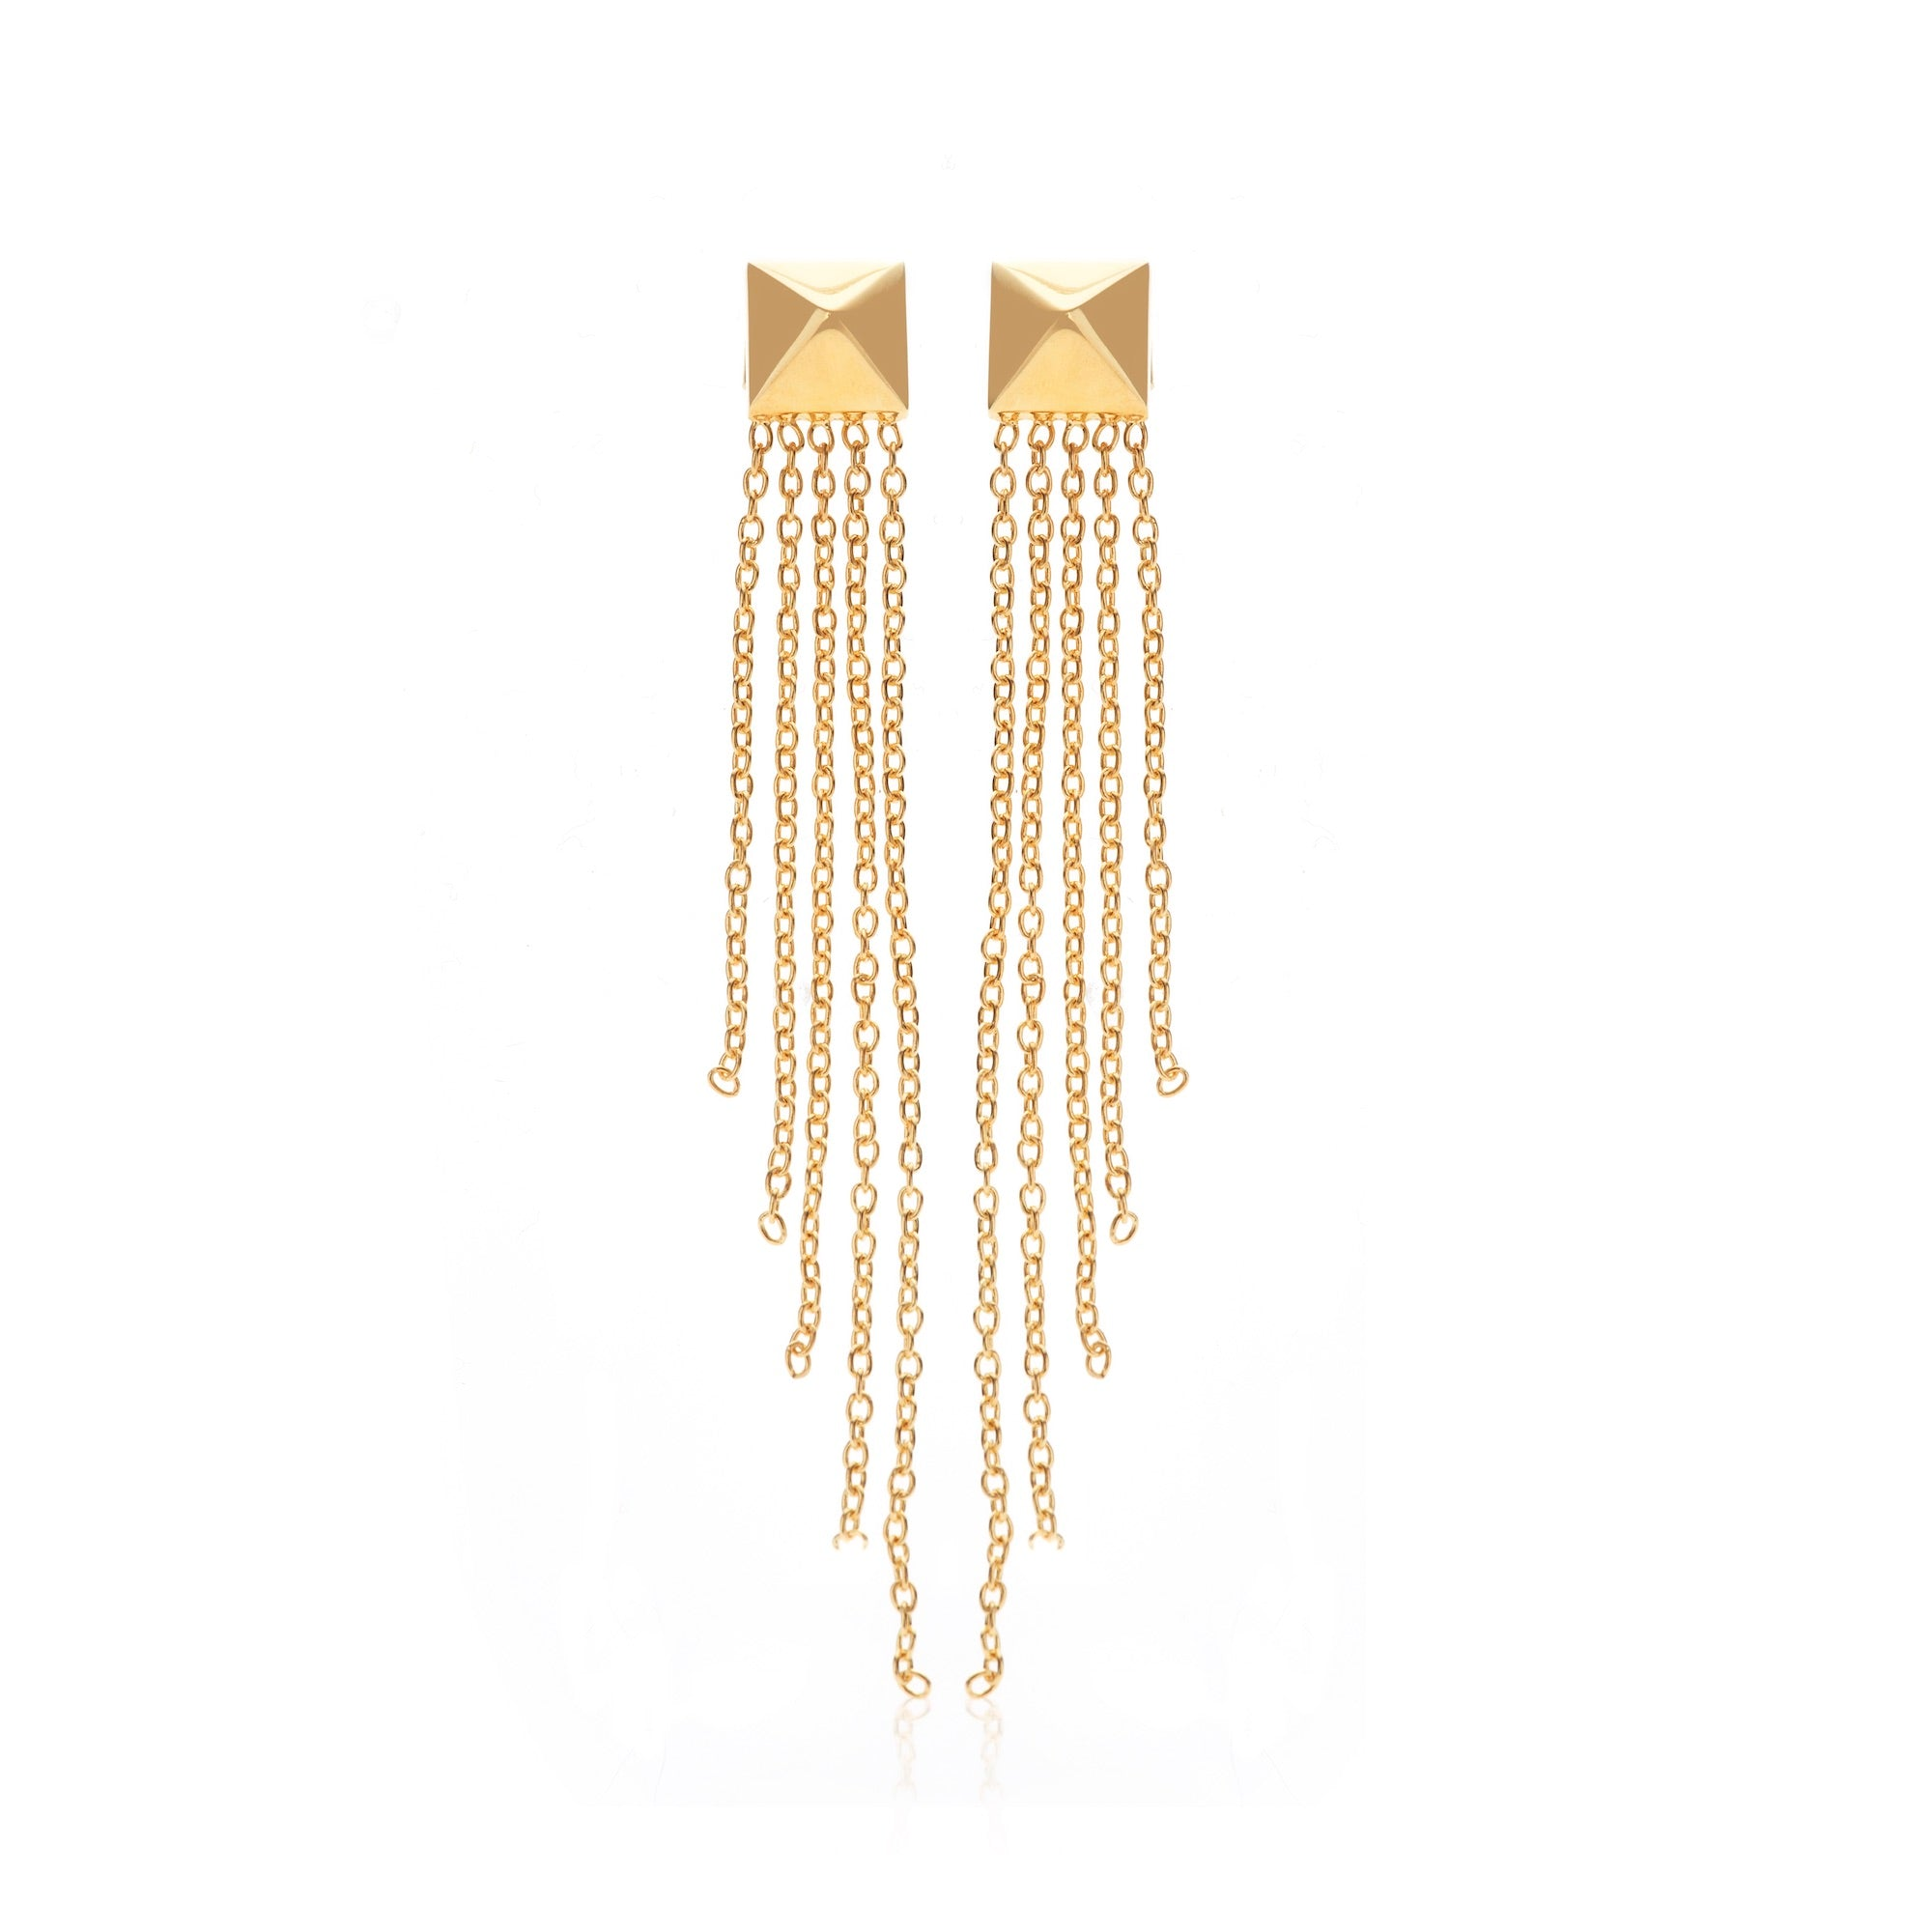 Silk & Steel Jewellery She Was Pyramid Tassle Gold Plated Sterling Silver Earrings